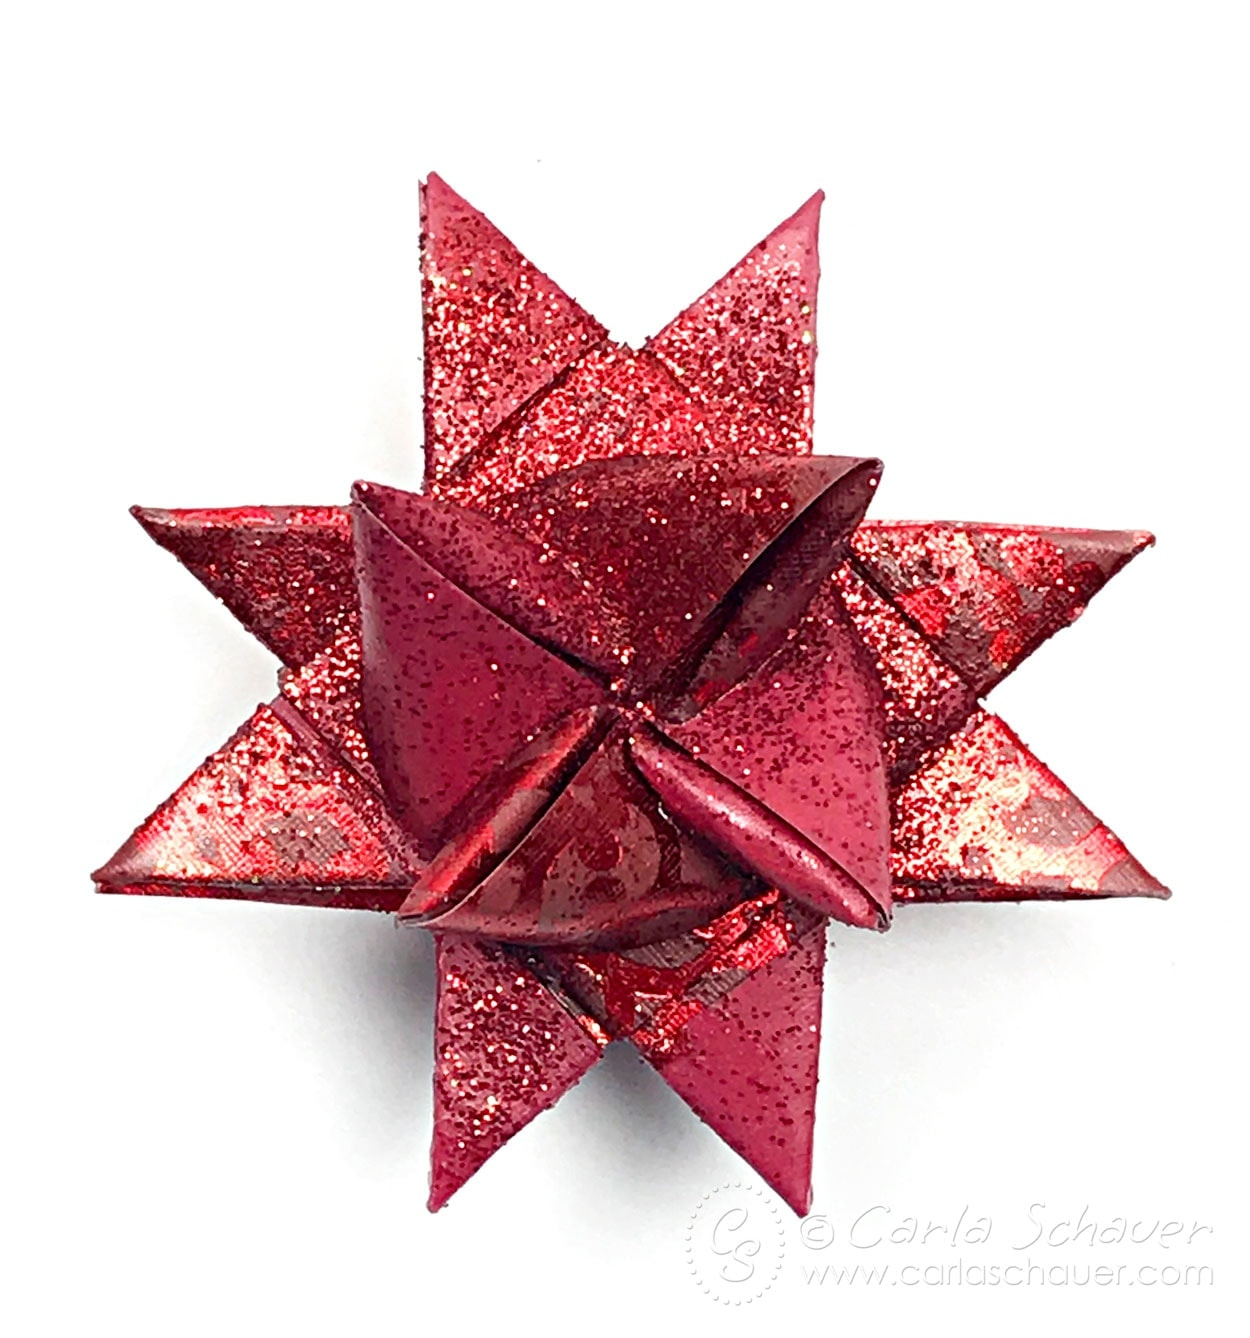 Red Wax Dipped and Glittered Froebel Star Ornamenton white background